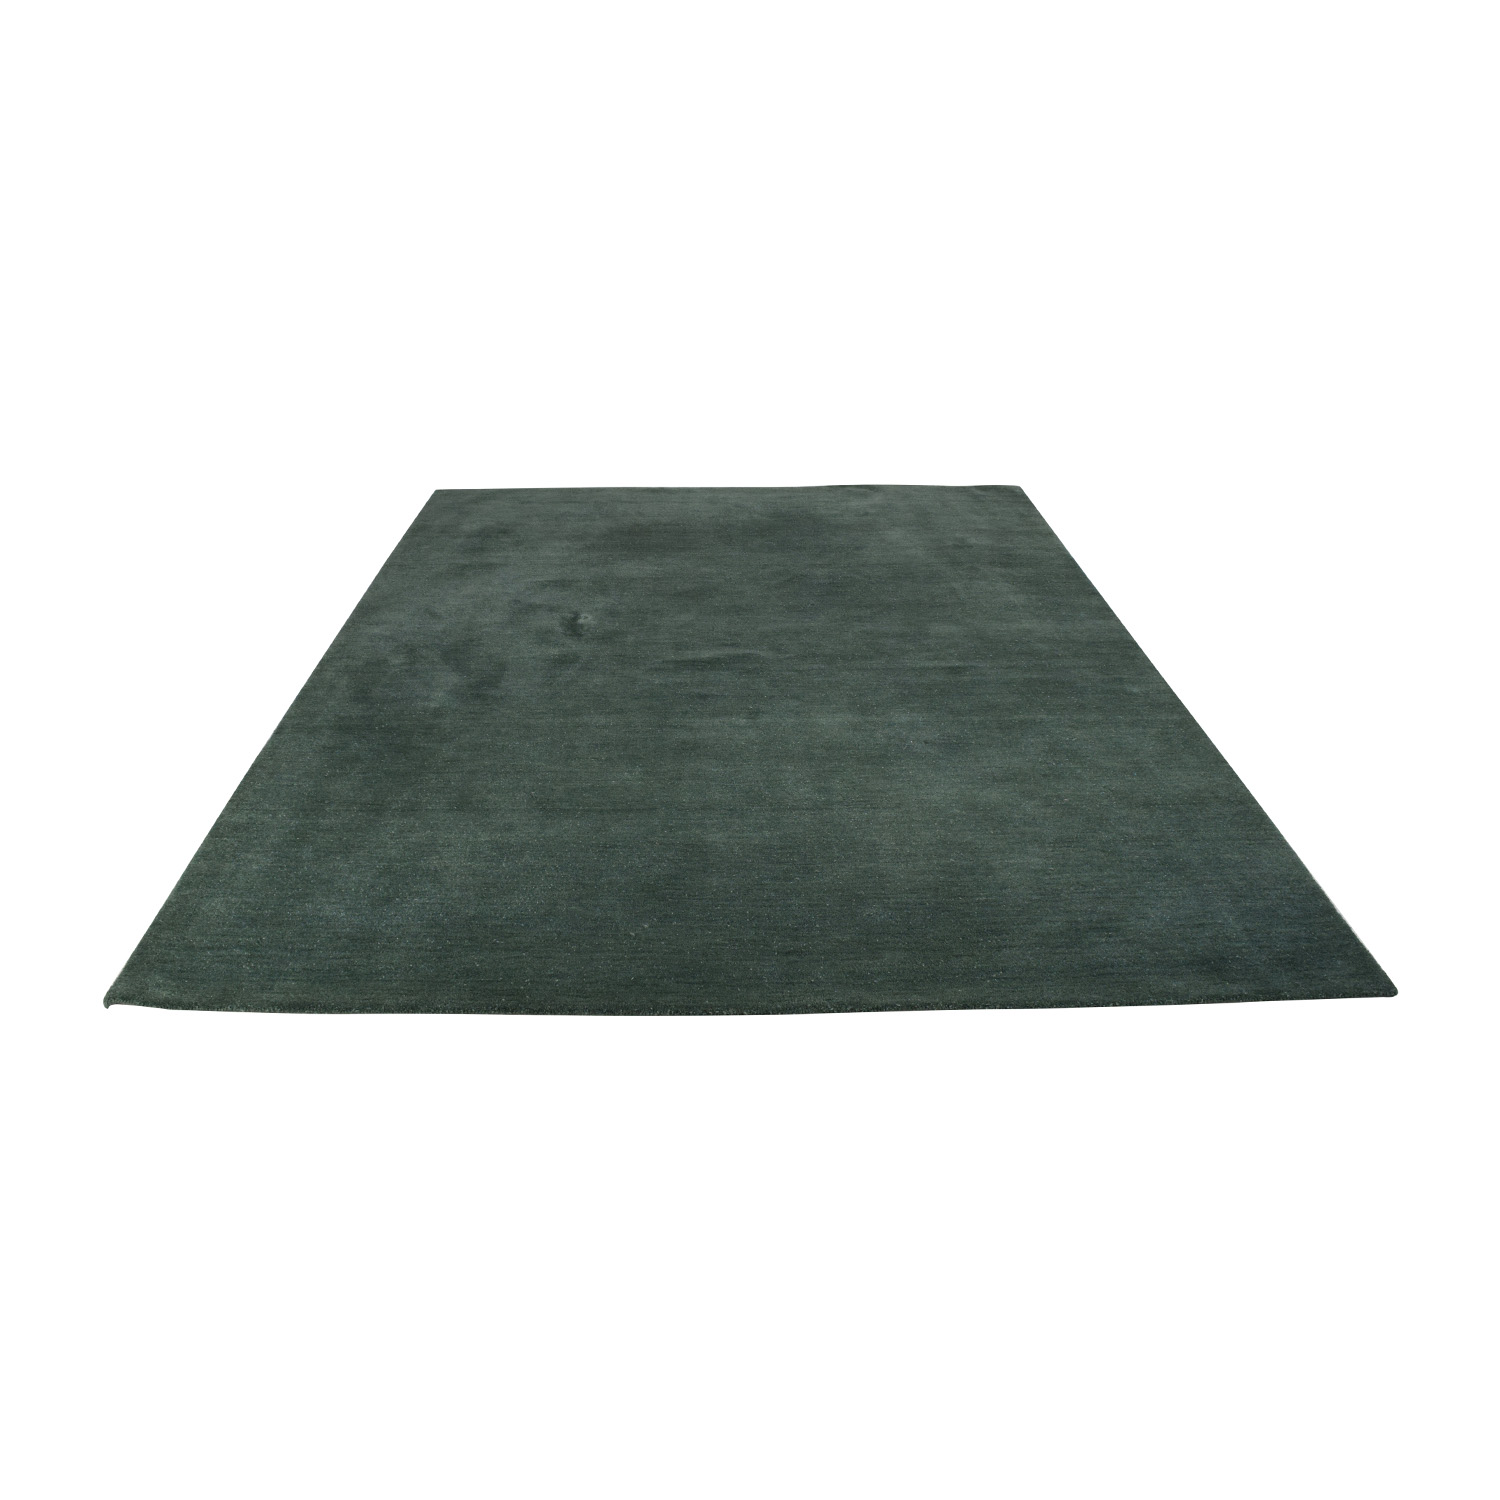 buy Crate & Barrel Green Area Rug Crate and Barrel Decor